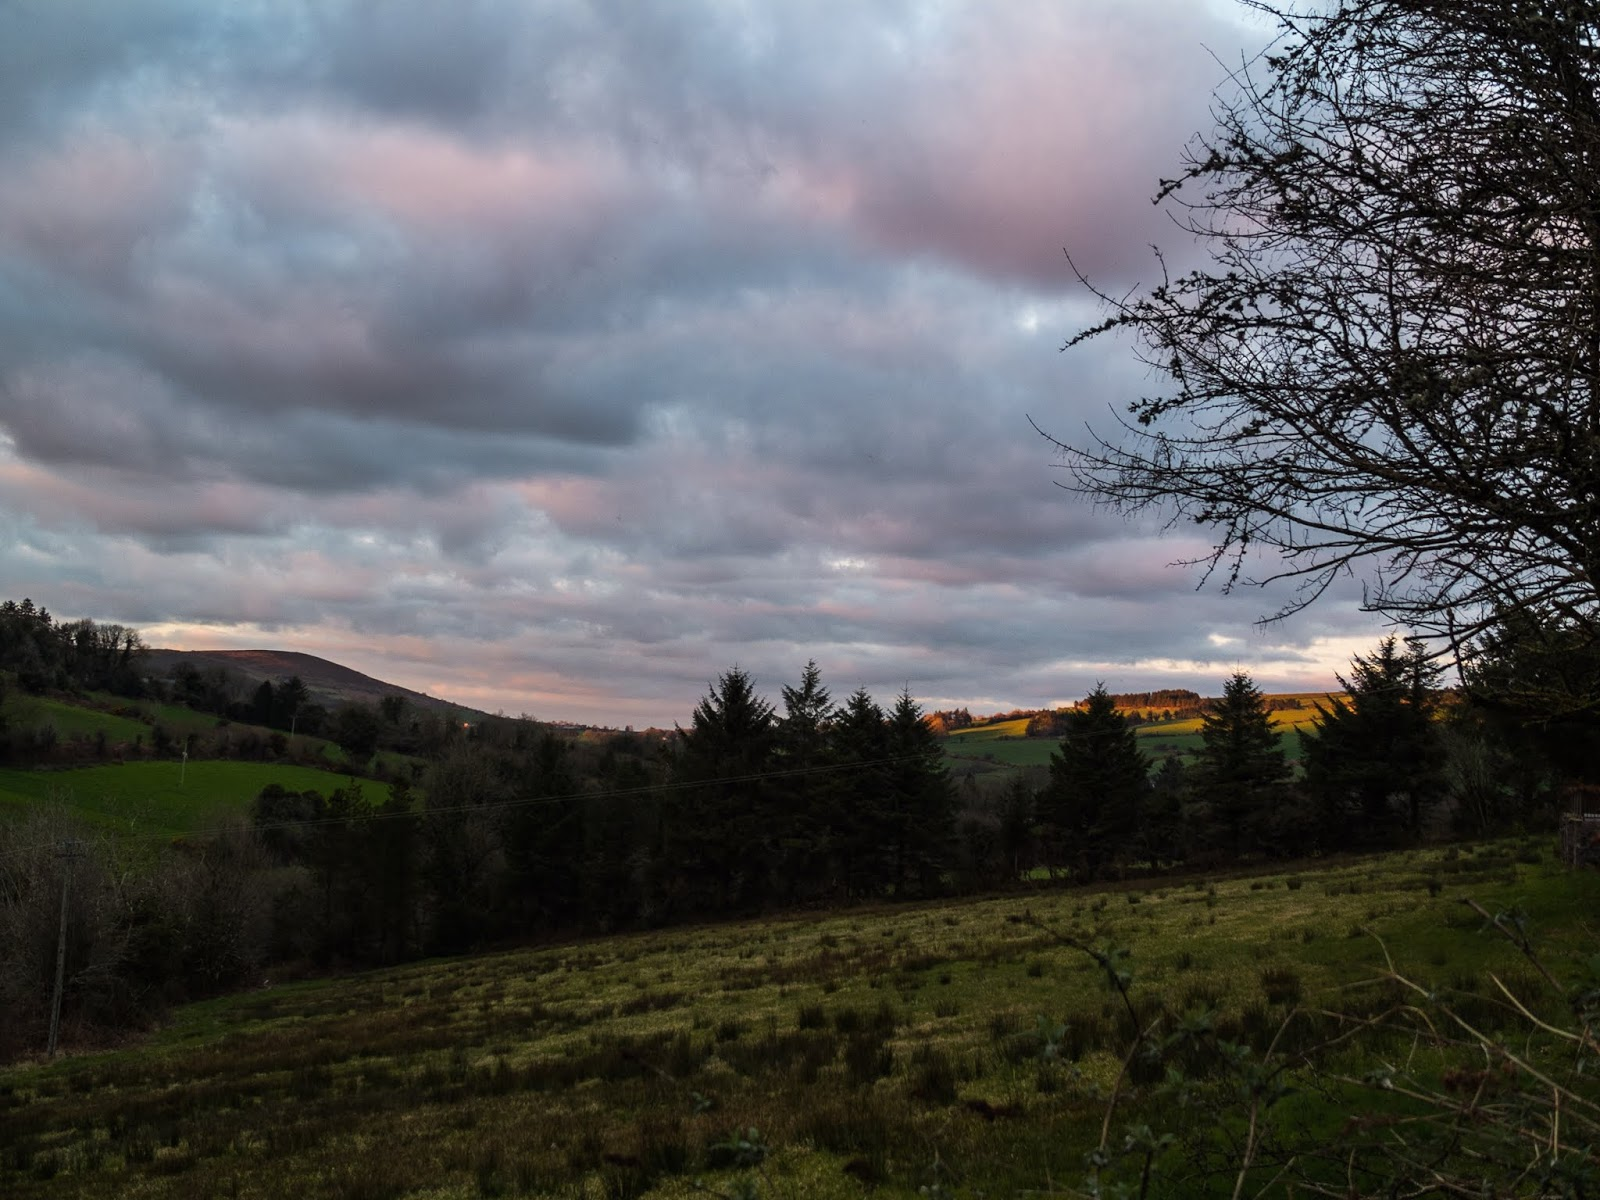 Pink clouds over fields and mountains at sunset in Co.Cork, Ireland.